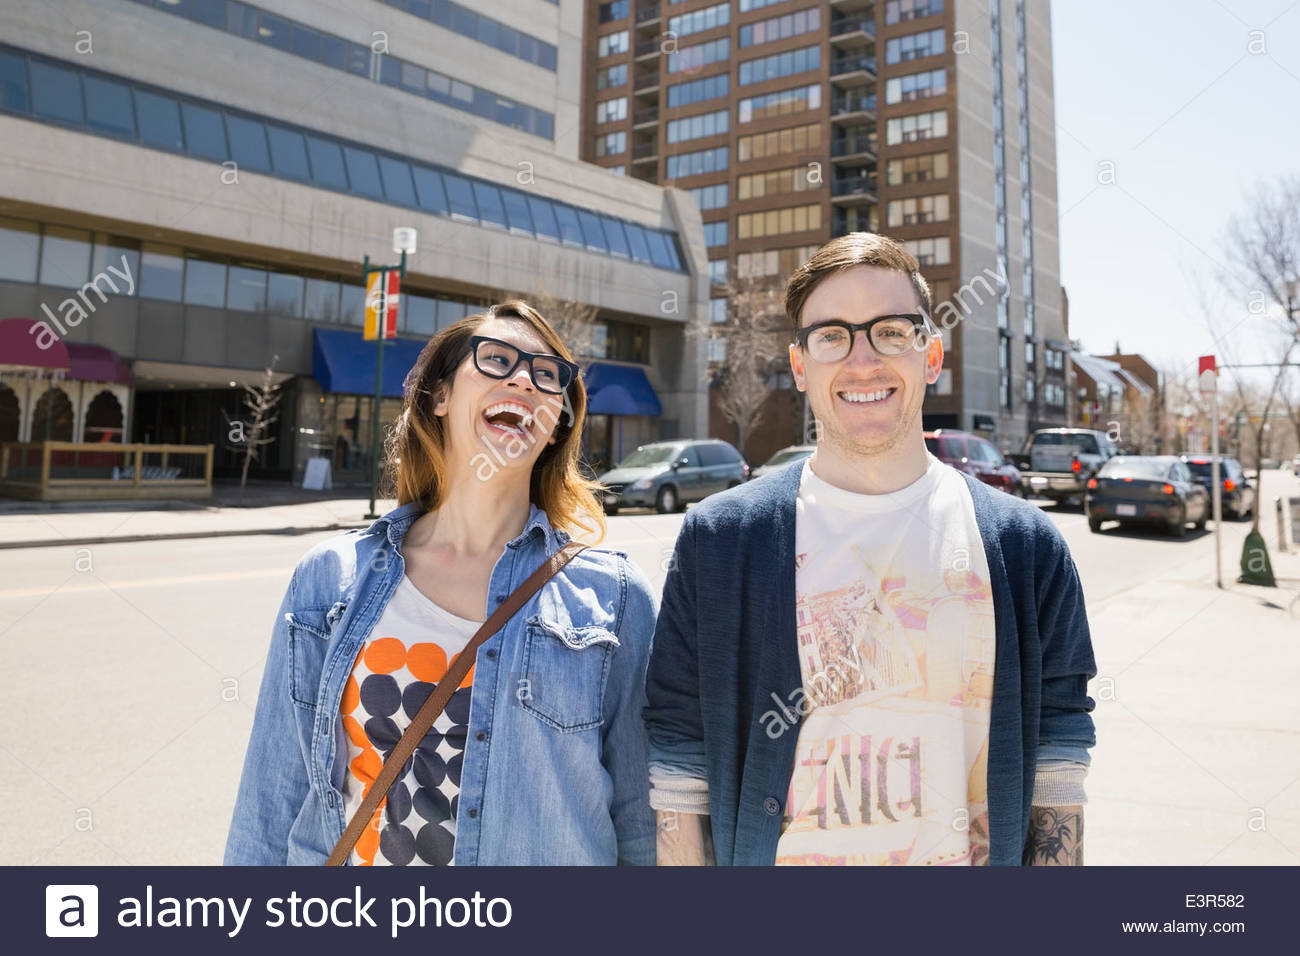 Hipster couple laughing on sunny urban street - Stock Image